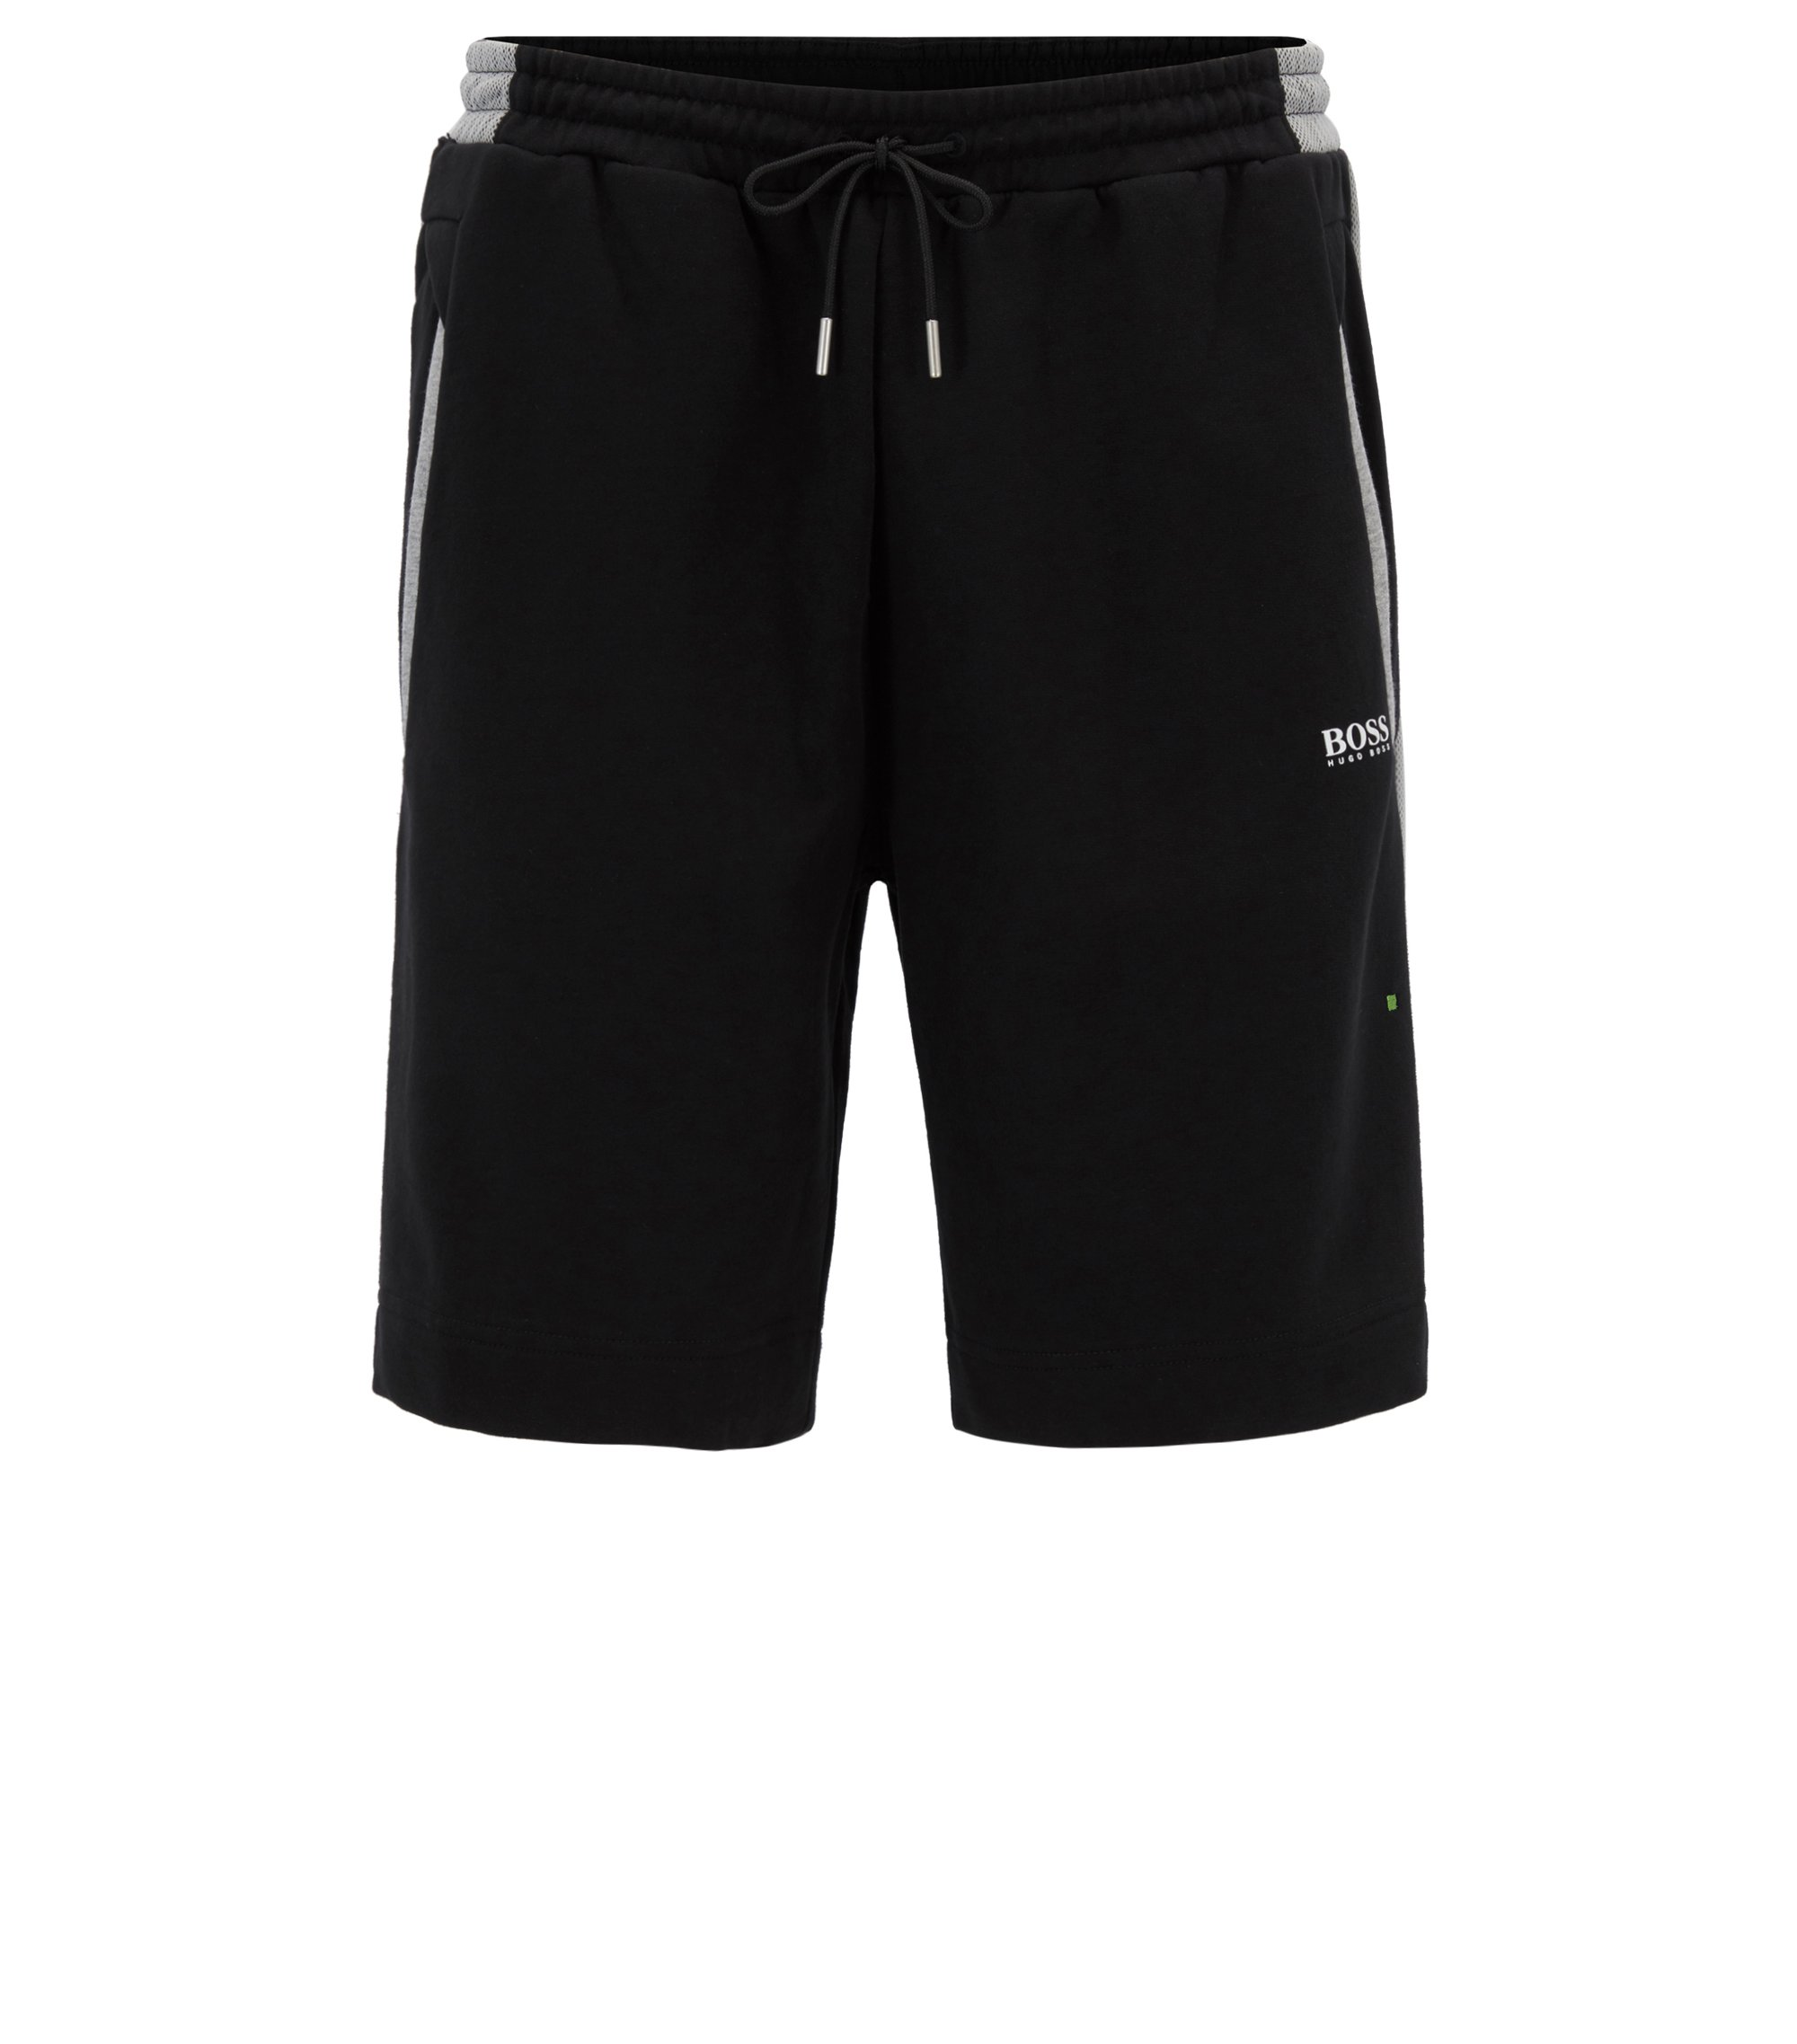 Cotton Sweat Short | Headlo, Black